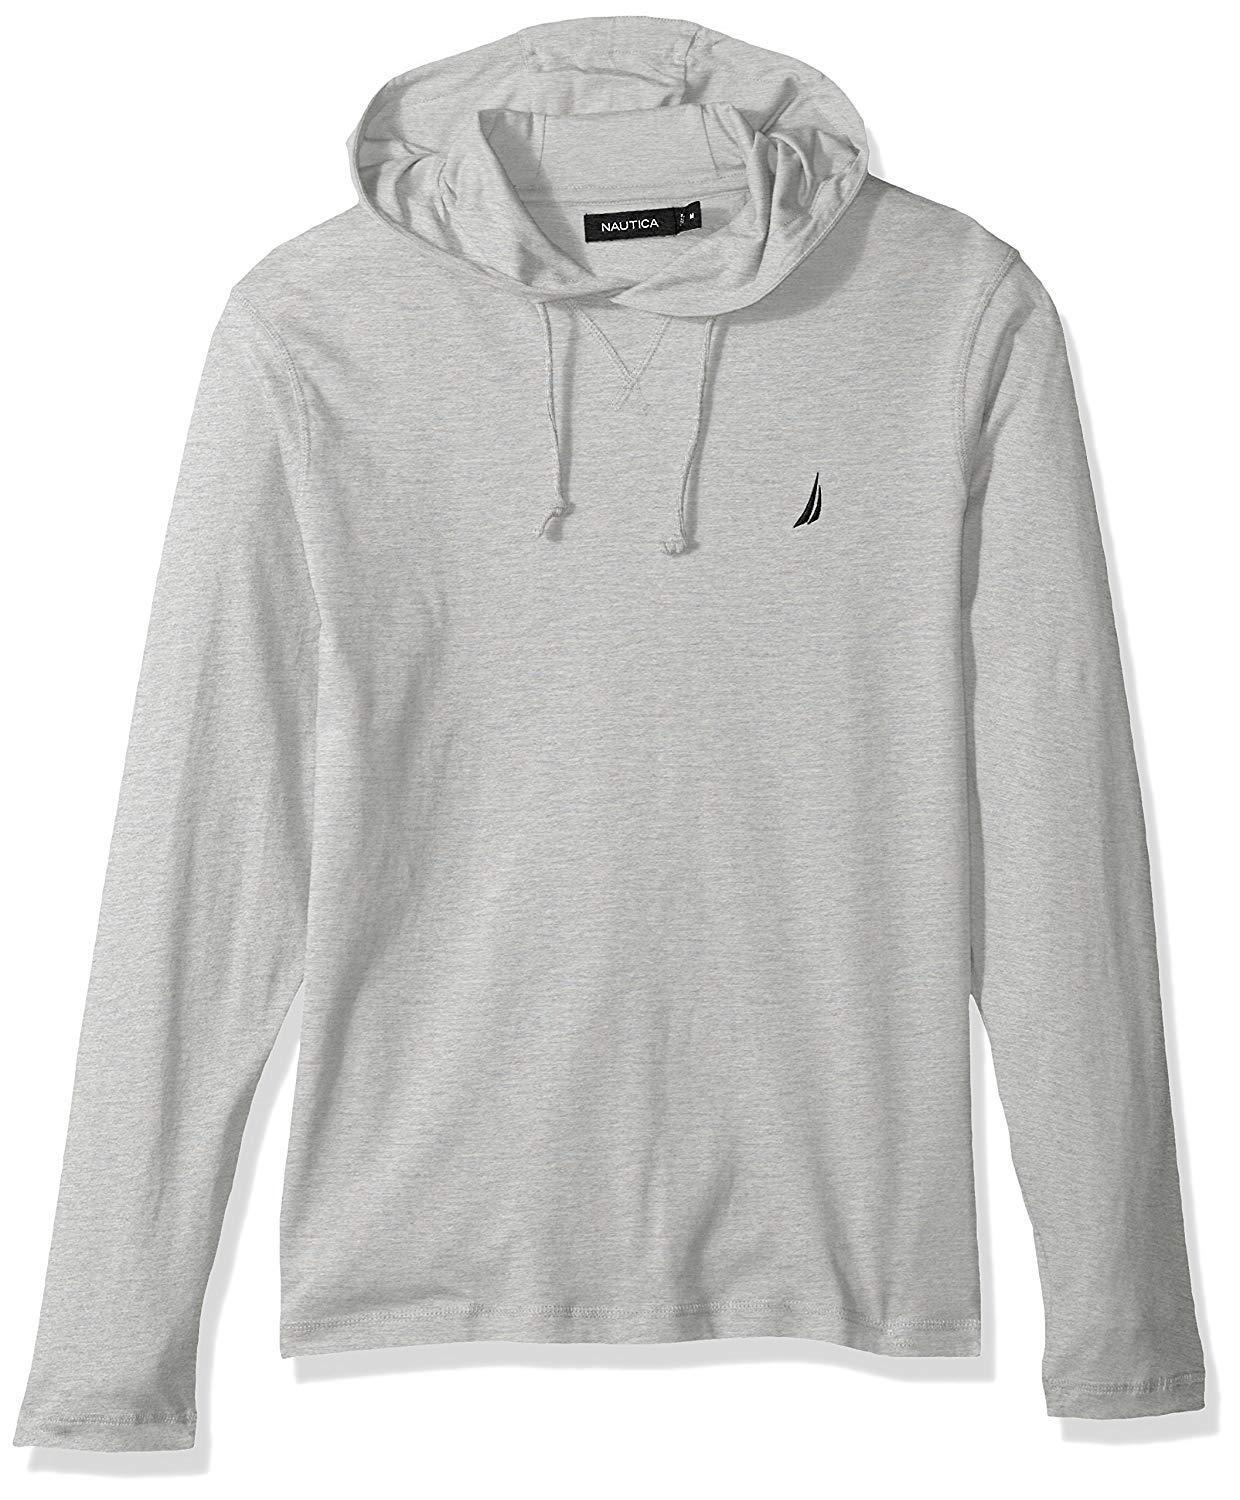 Nautica Mens Blue Sail Classic Fit Limited Edition Logo Hoodie Light Gray L